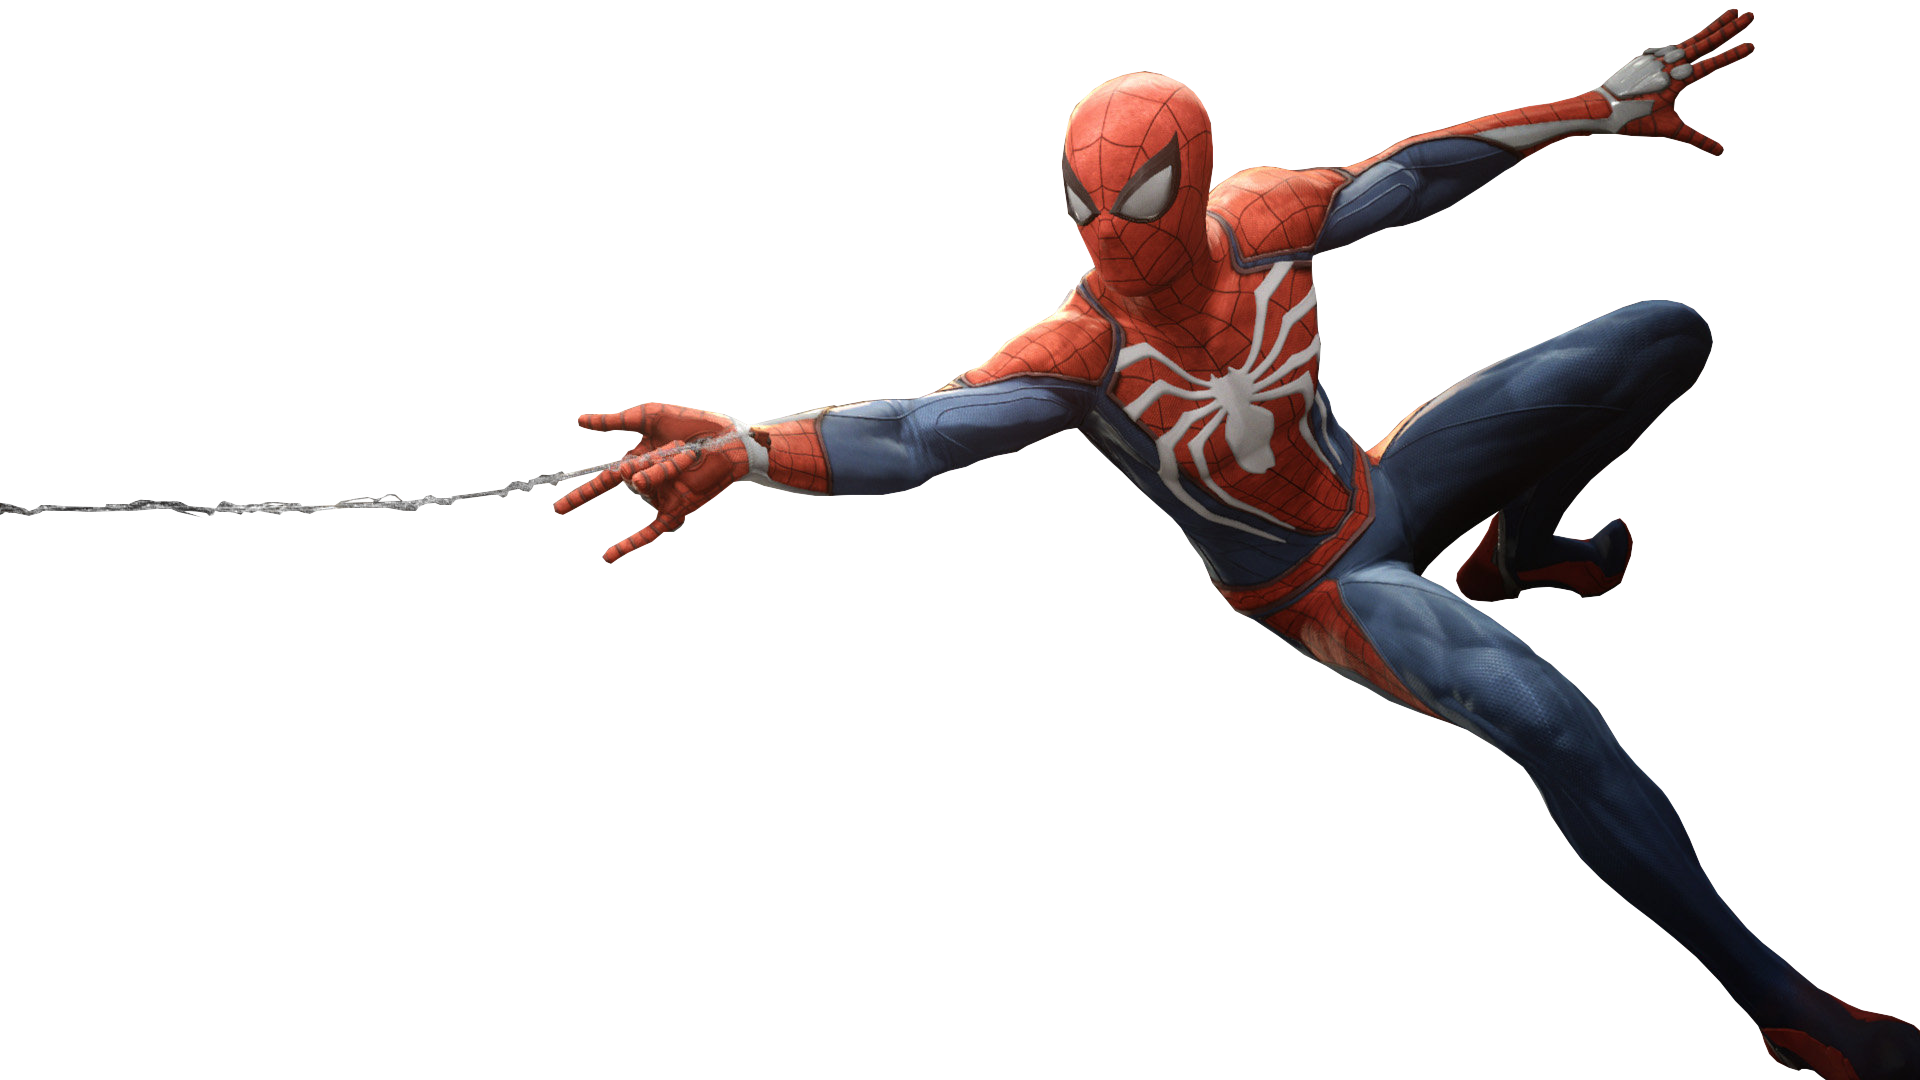 Spider-Man | The Crossover Game Wikia | FANDOM powered by ... Tobey Maguire Wiki